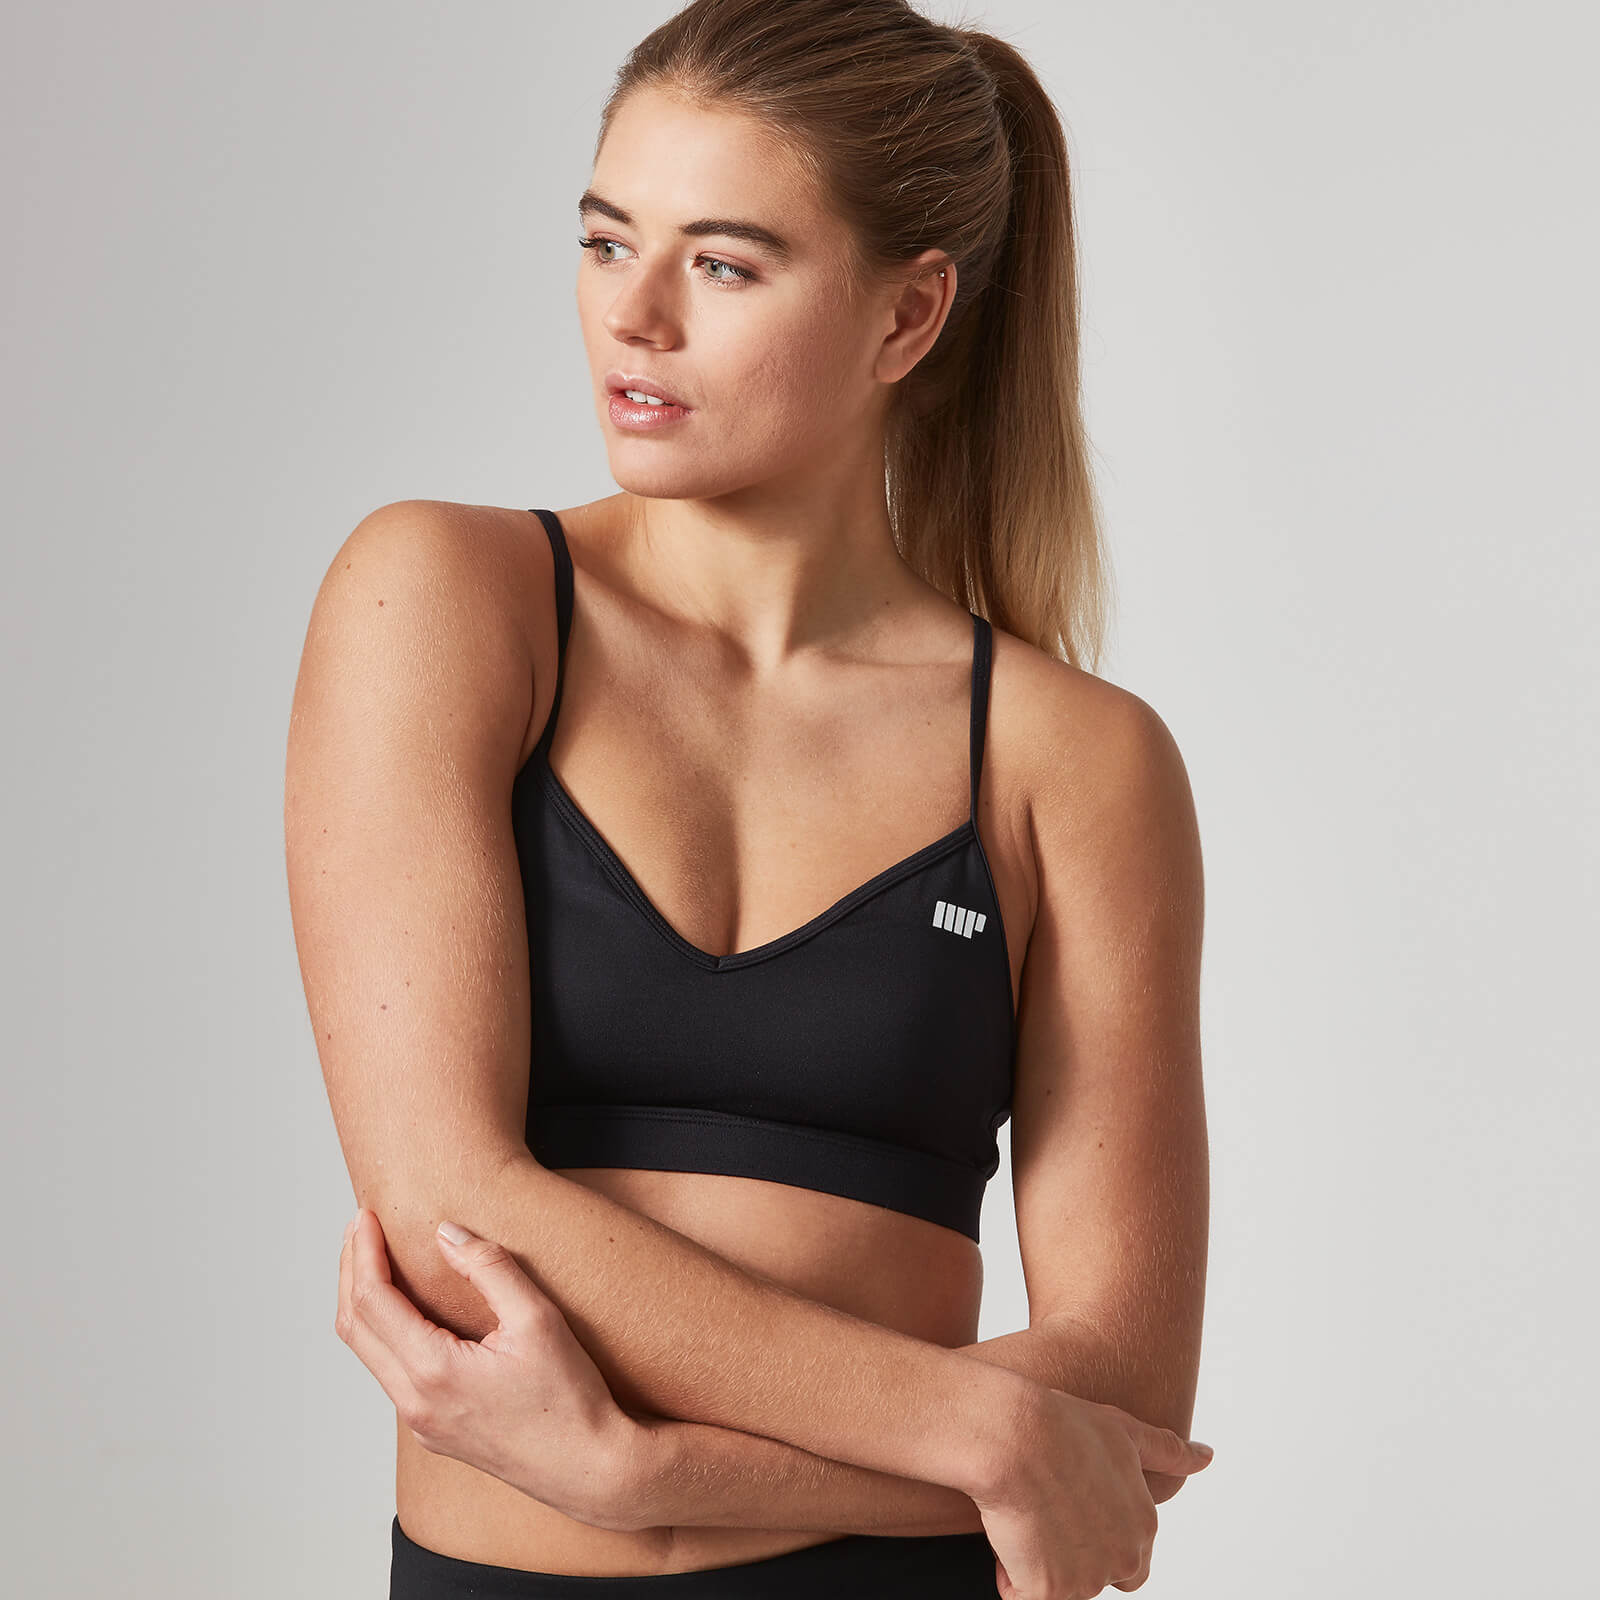 Heartbeat Sports Bra - Black, XL